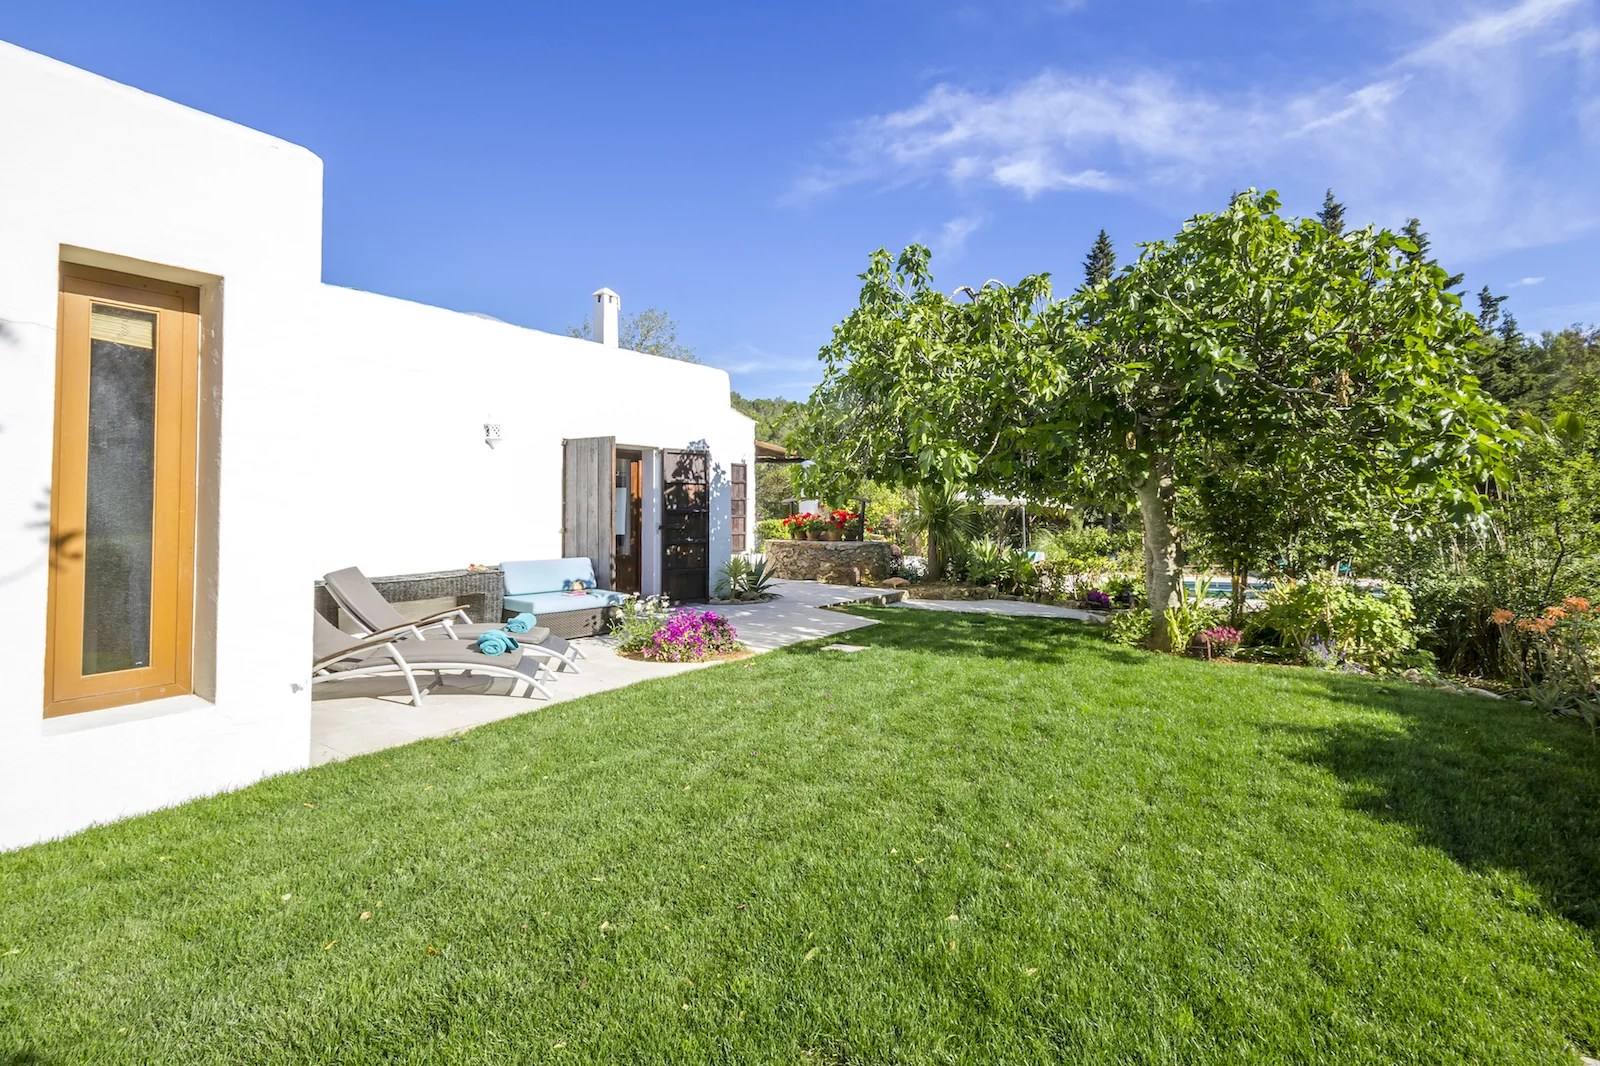 Casa Avalon 4 bedroom villa for rent Santa Gertrudis Ibiza